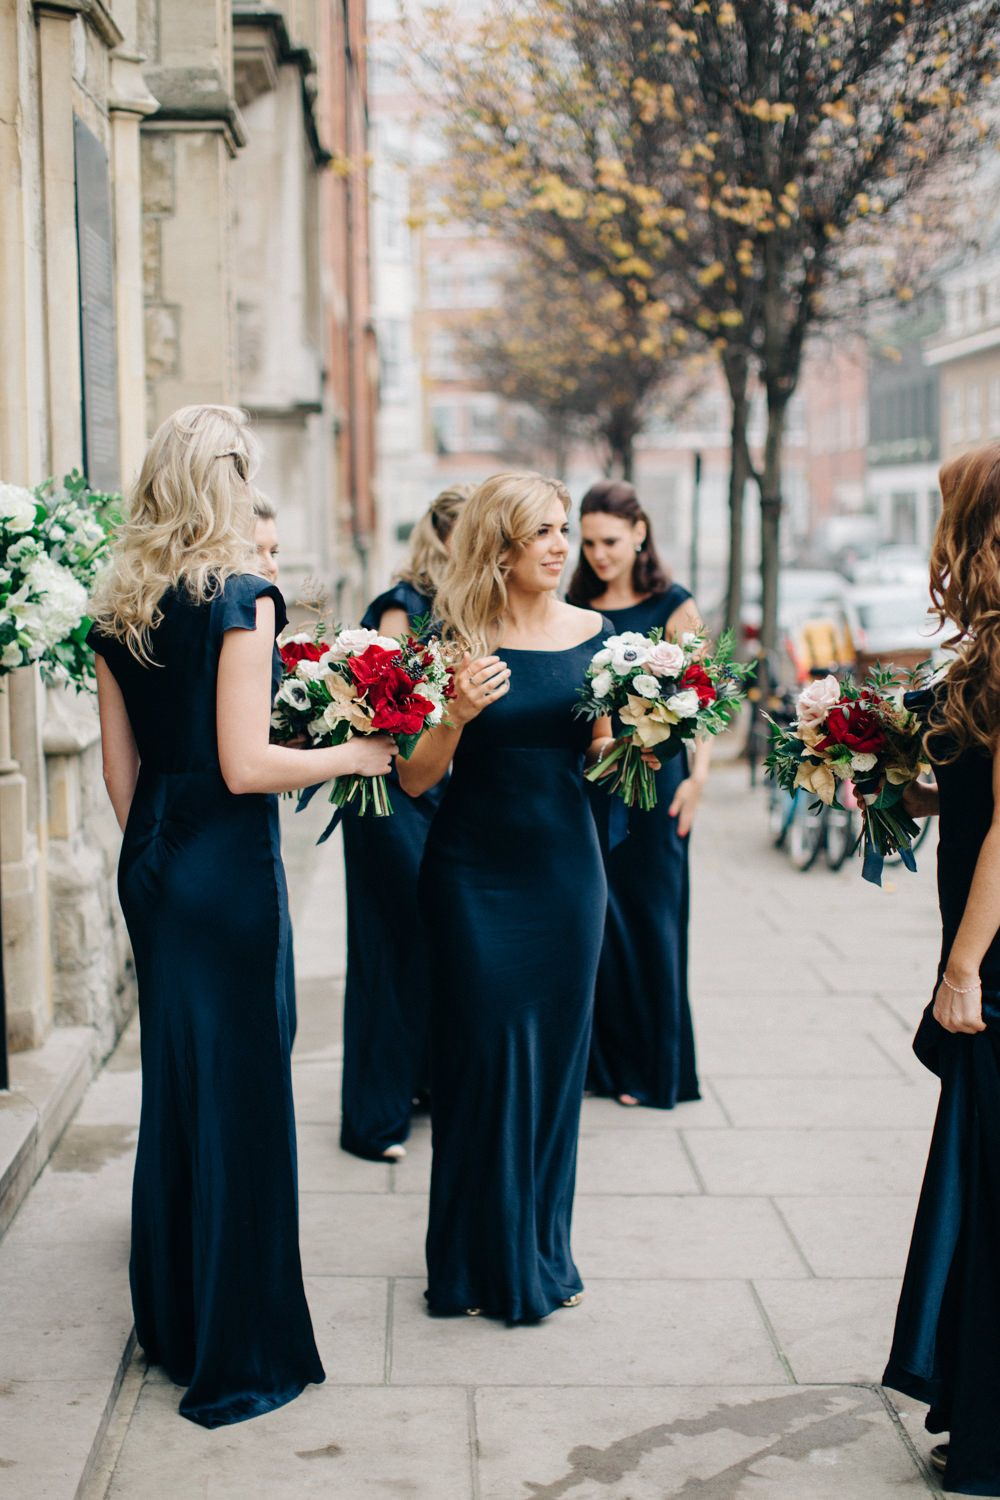 Elegant navy gold winter wedding styled by liz linkleter events elegant navy gold winter wedding styled by liz linkleter events with charlotte simpson bridal gown ombrellifo Gallery